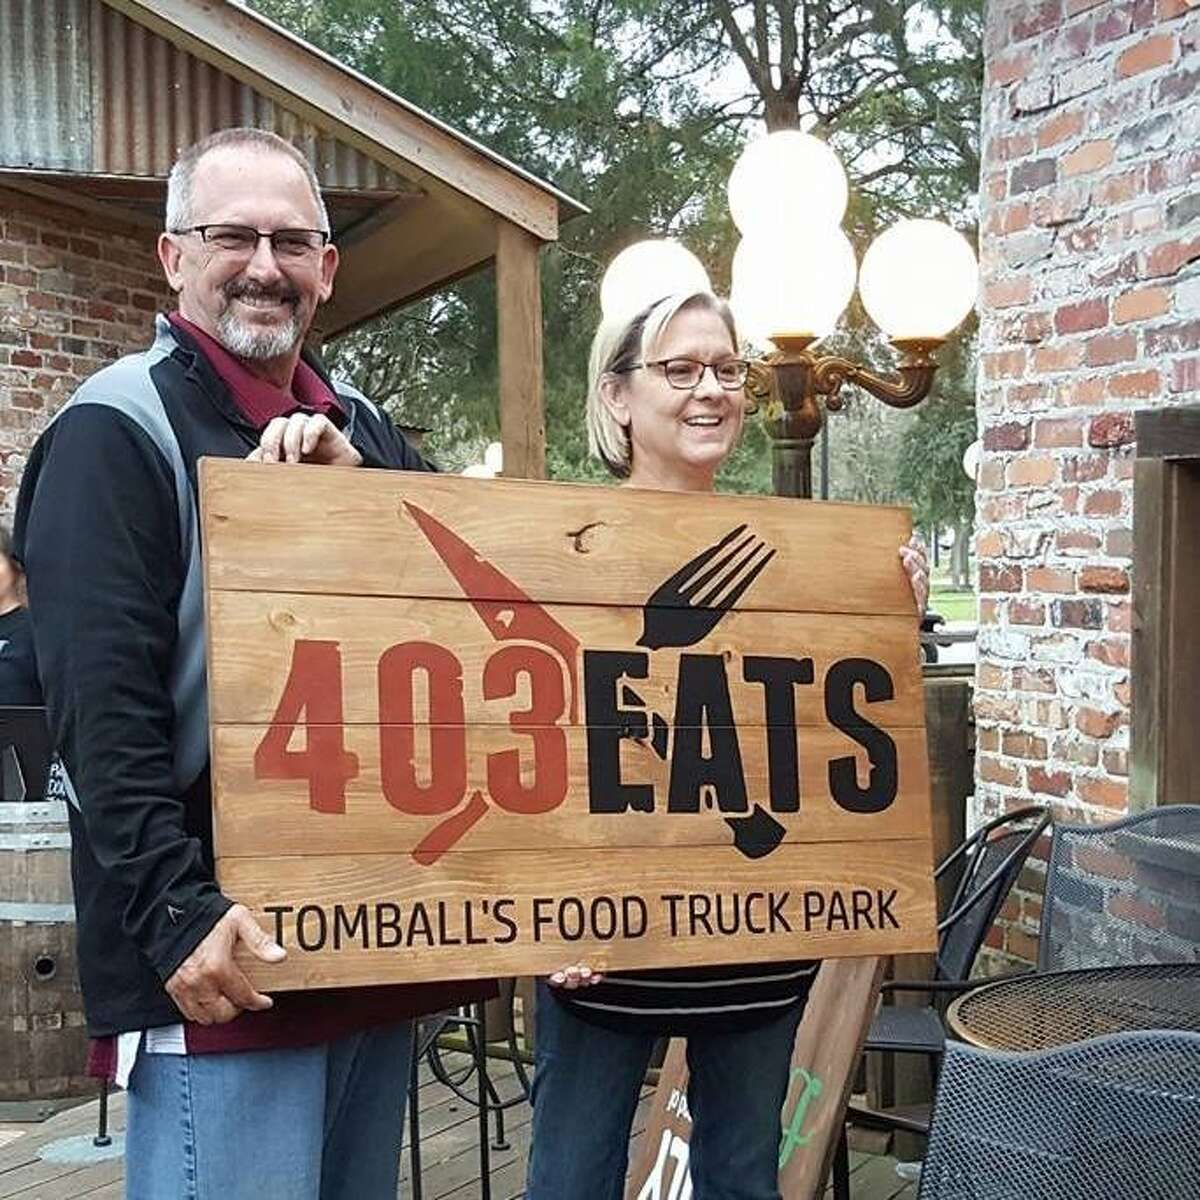 403 Eats, Tomball's first food truck park is coming soon. SLIDESHOW: Must-try food trucks around the Houston area